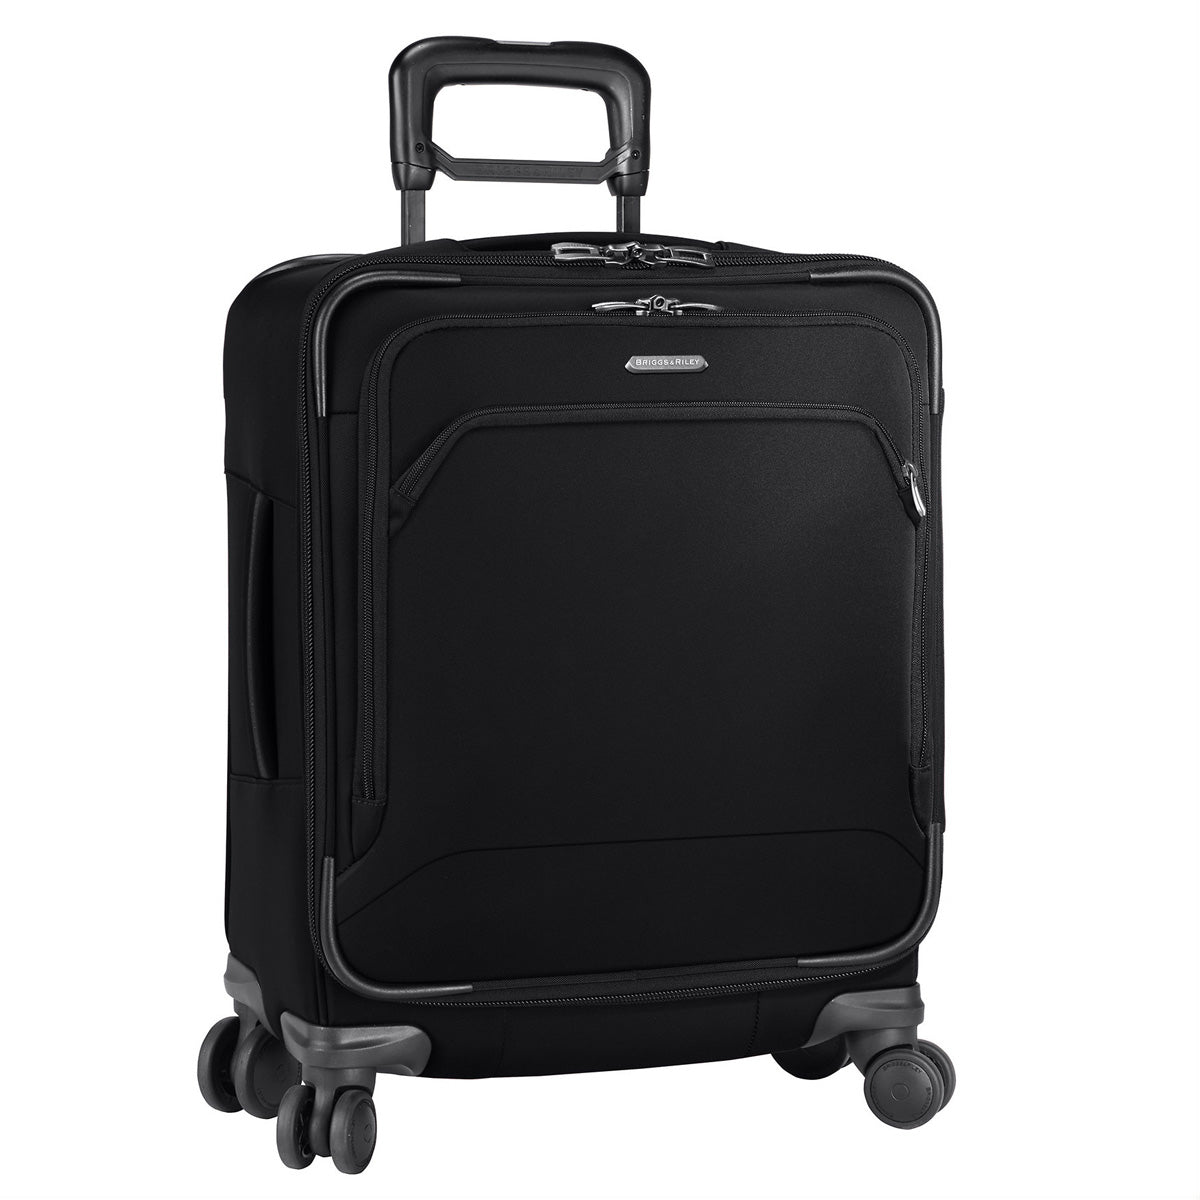 Briggs & Riley Transcend International Carry On Wide Body Spinner